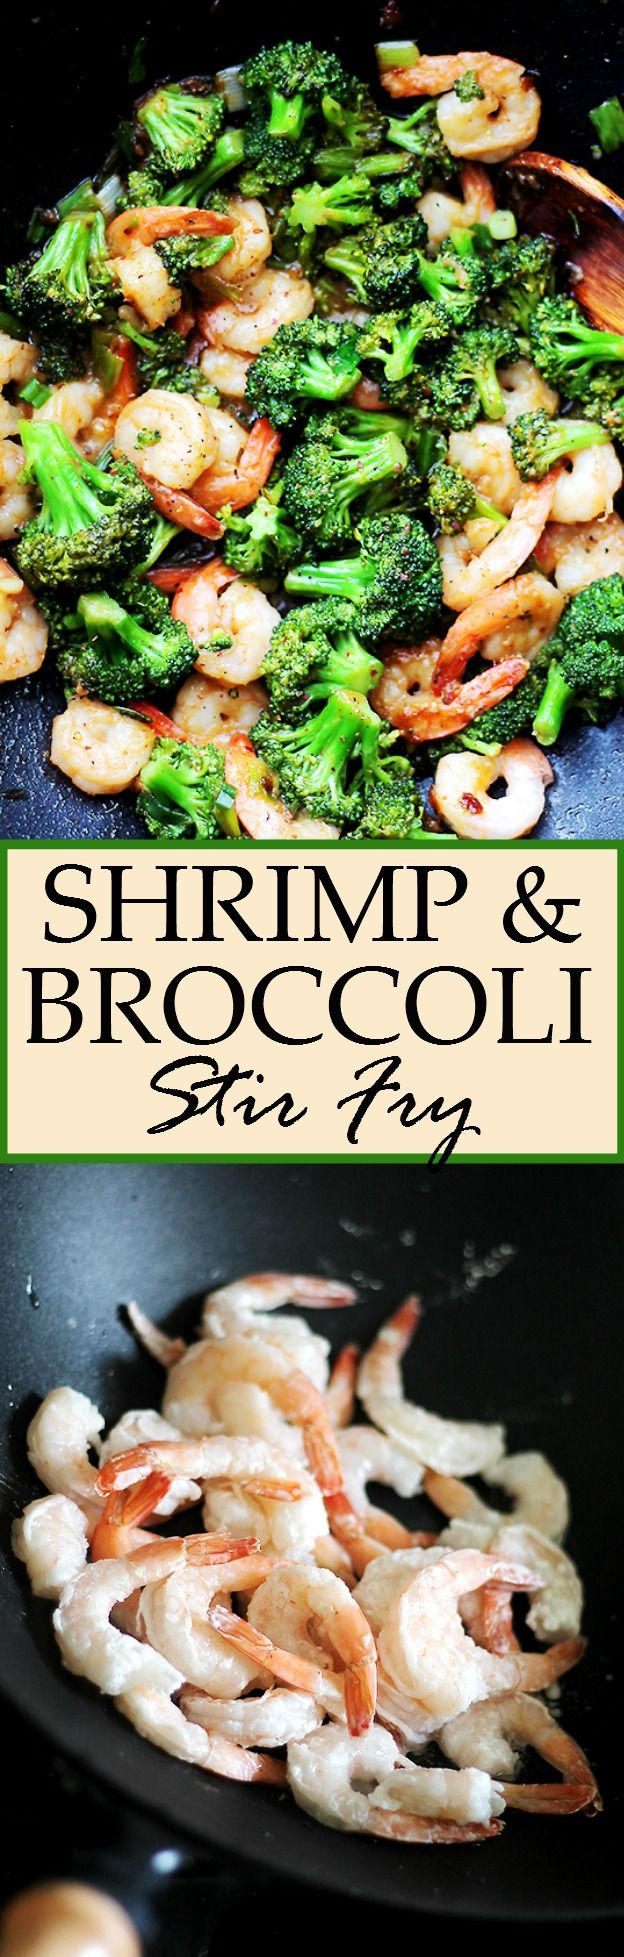 Shrimp and Broccoli Stir Fry Recipe | Diethood